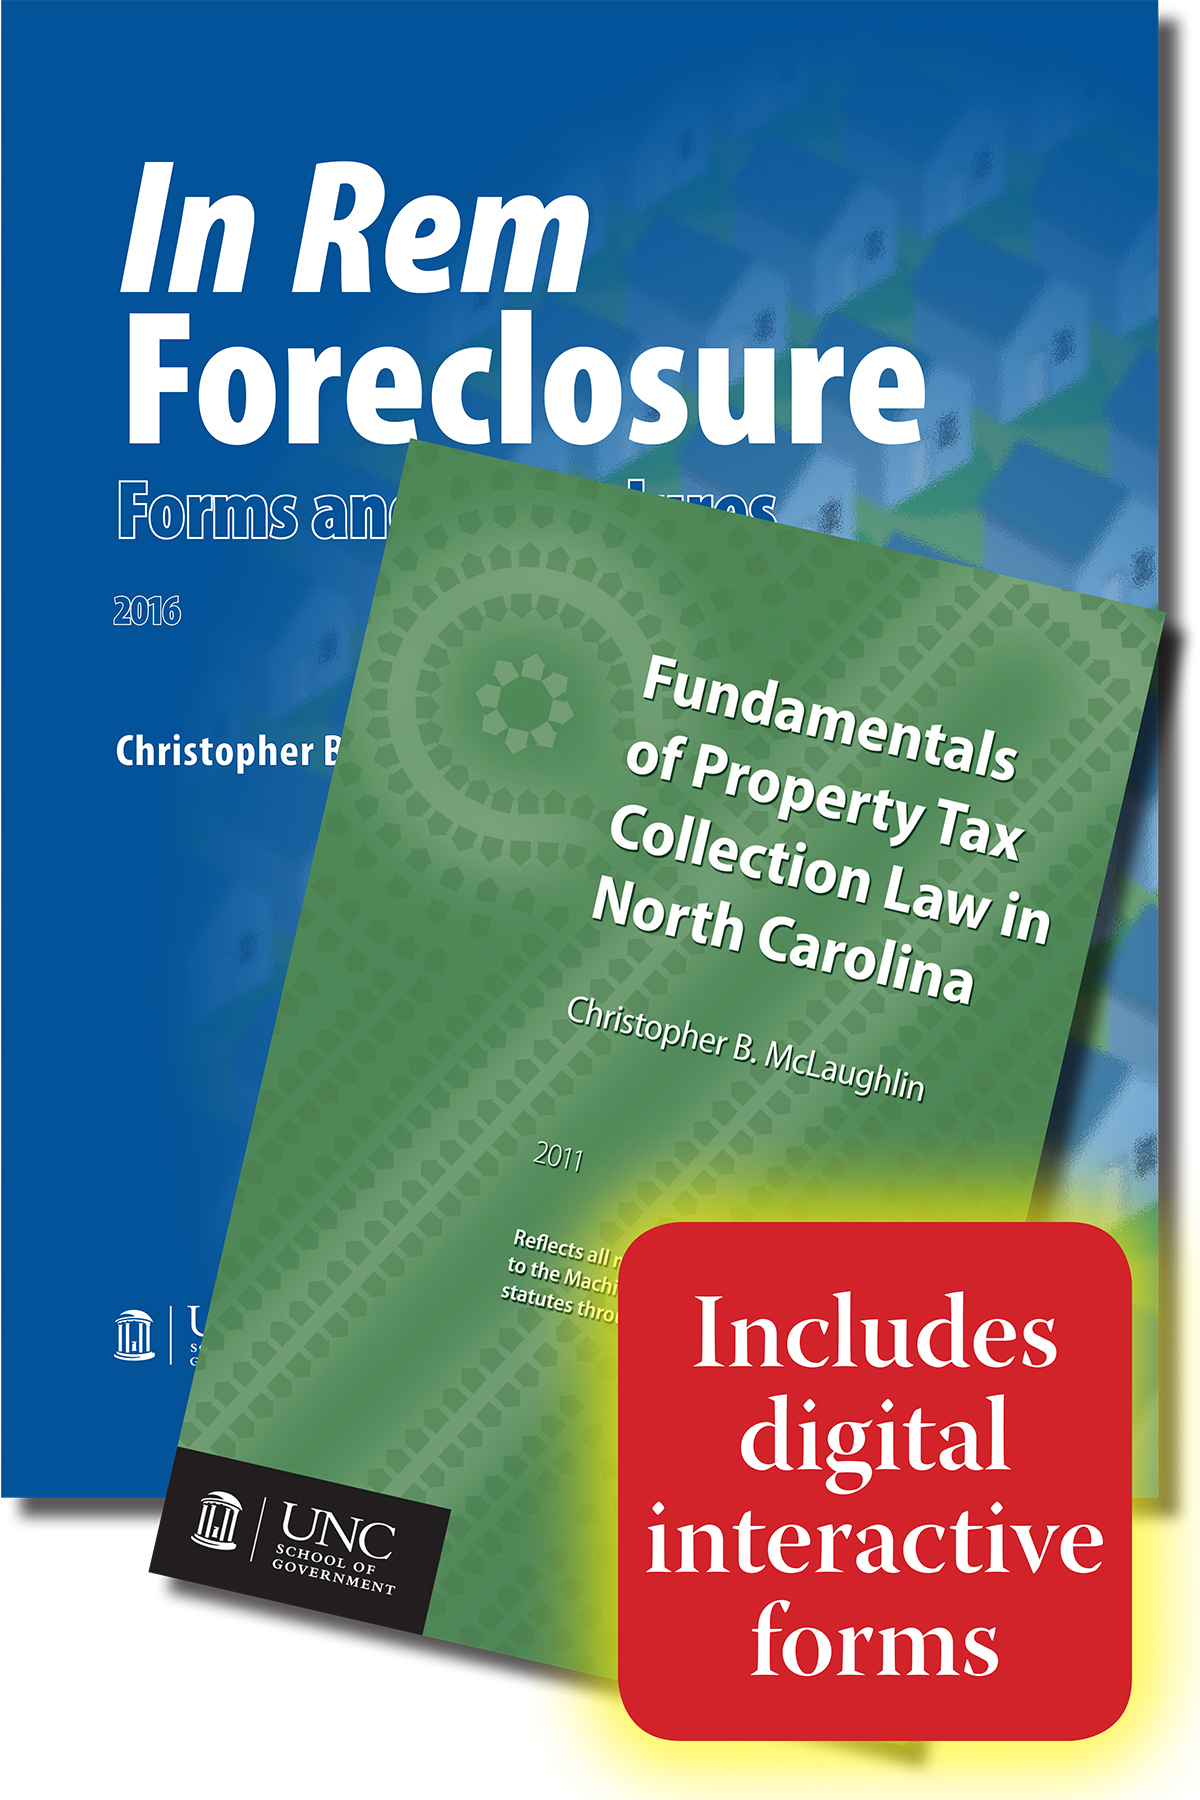 In Rem Foreclosure Forms and Procedures and Fundamentals of Property Tax Collection Law in North Carolina with Digital Forms